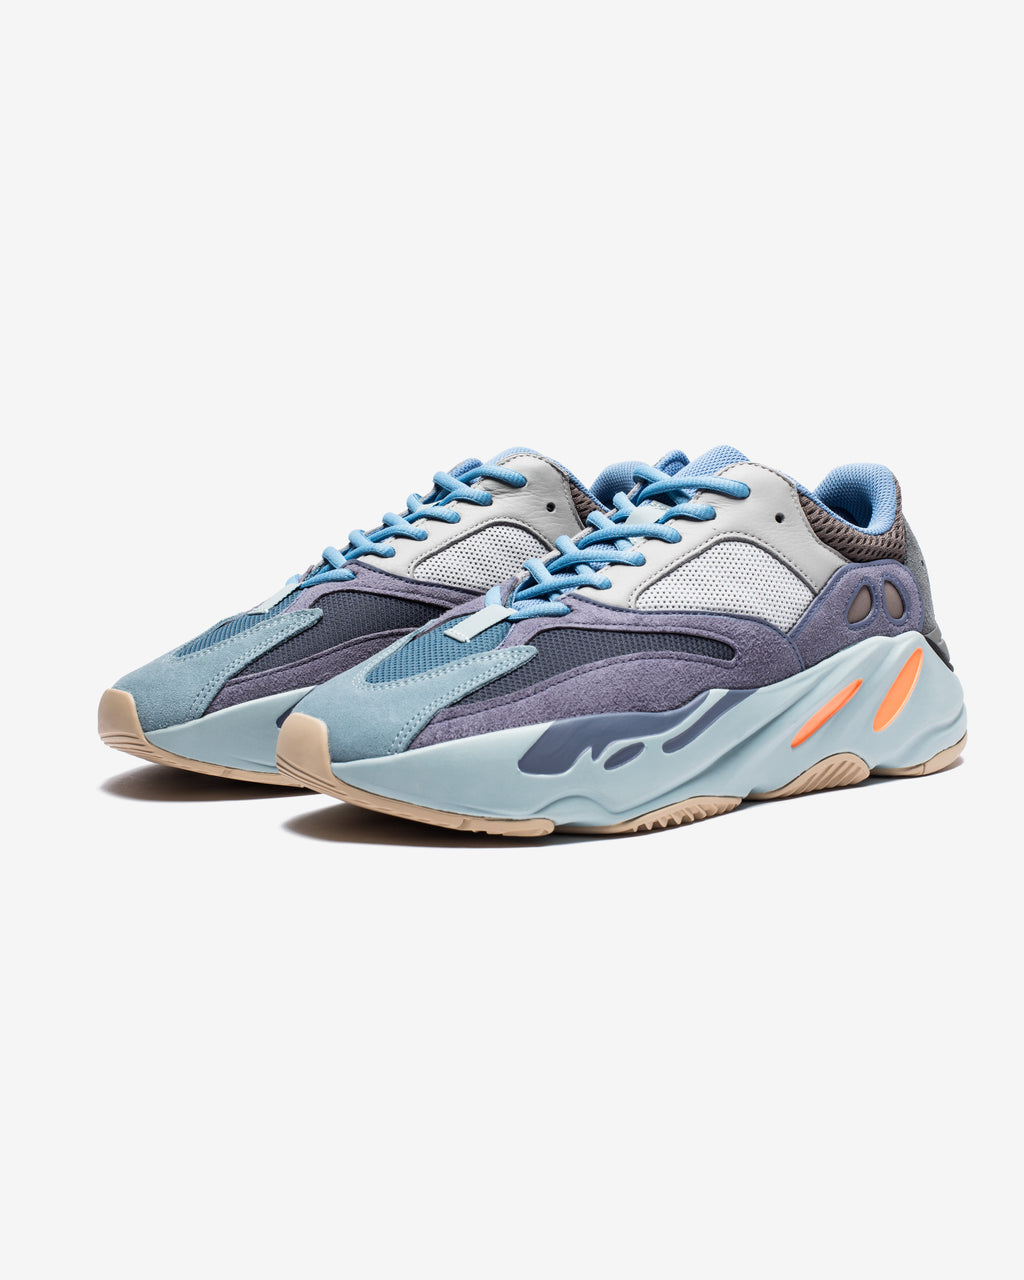 YEEZY BOOST 700 - CARBONBLUE